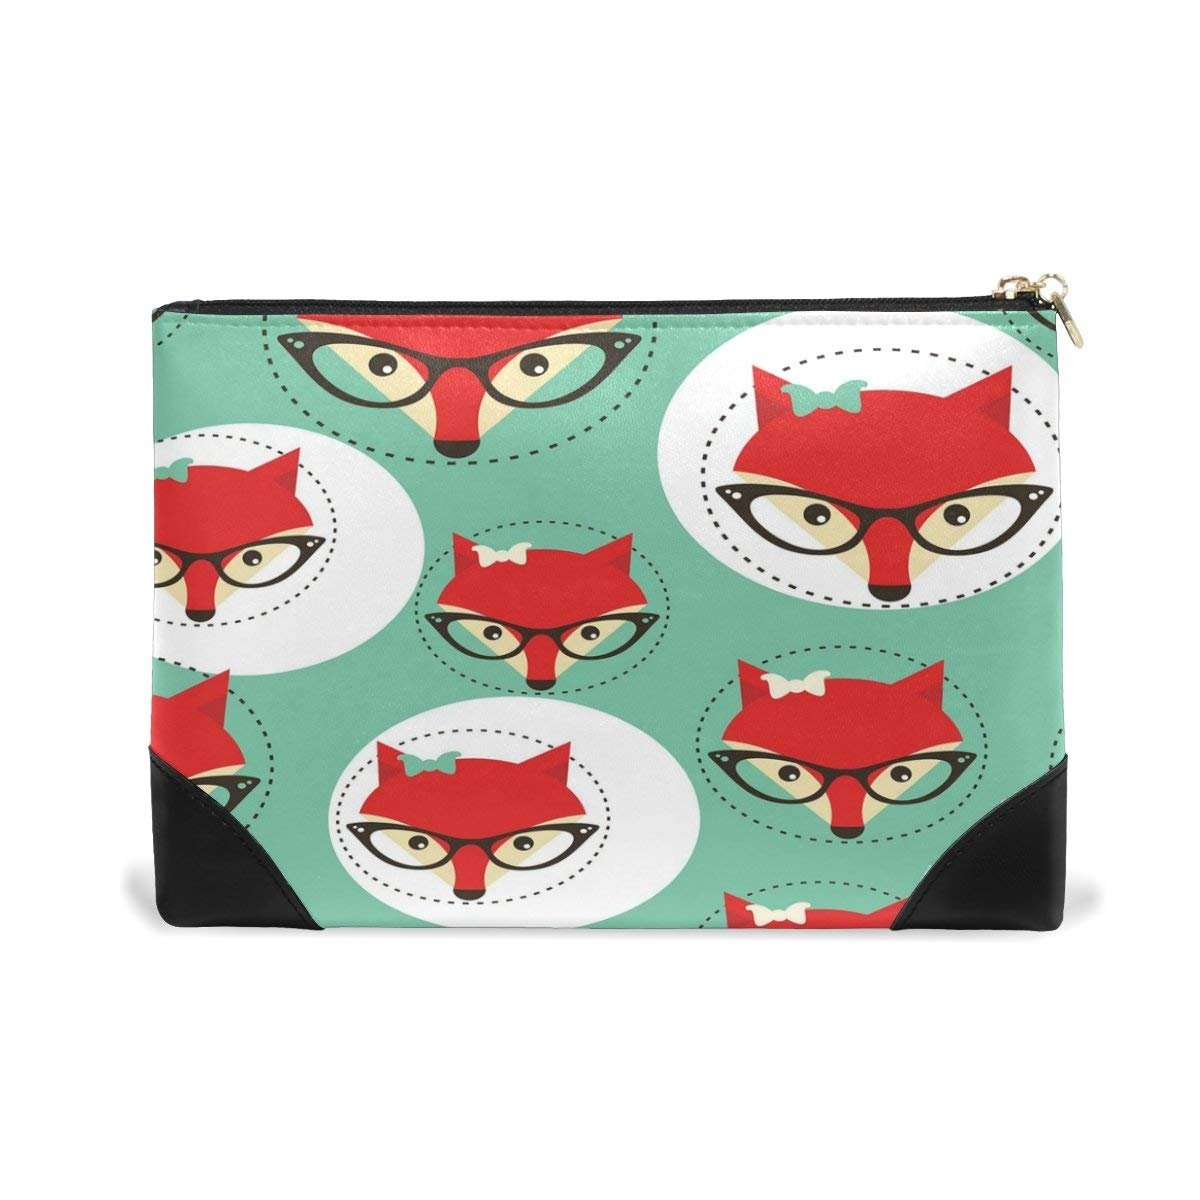 BLEFE Hipster Fox Face with Glasses Makeup Cosmetic Bag Pouch Travel Bag for Women Girls